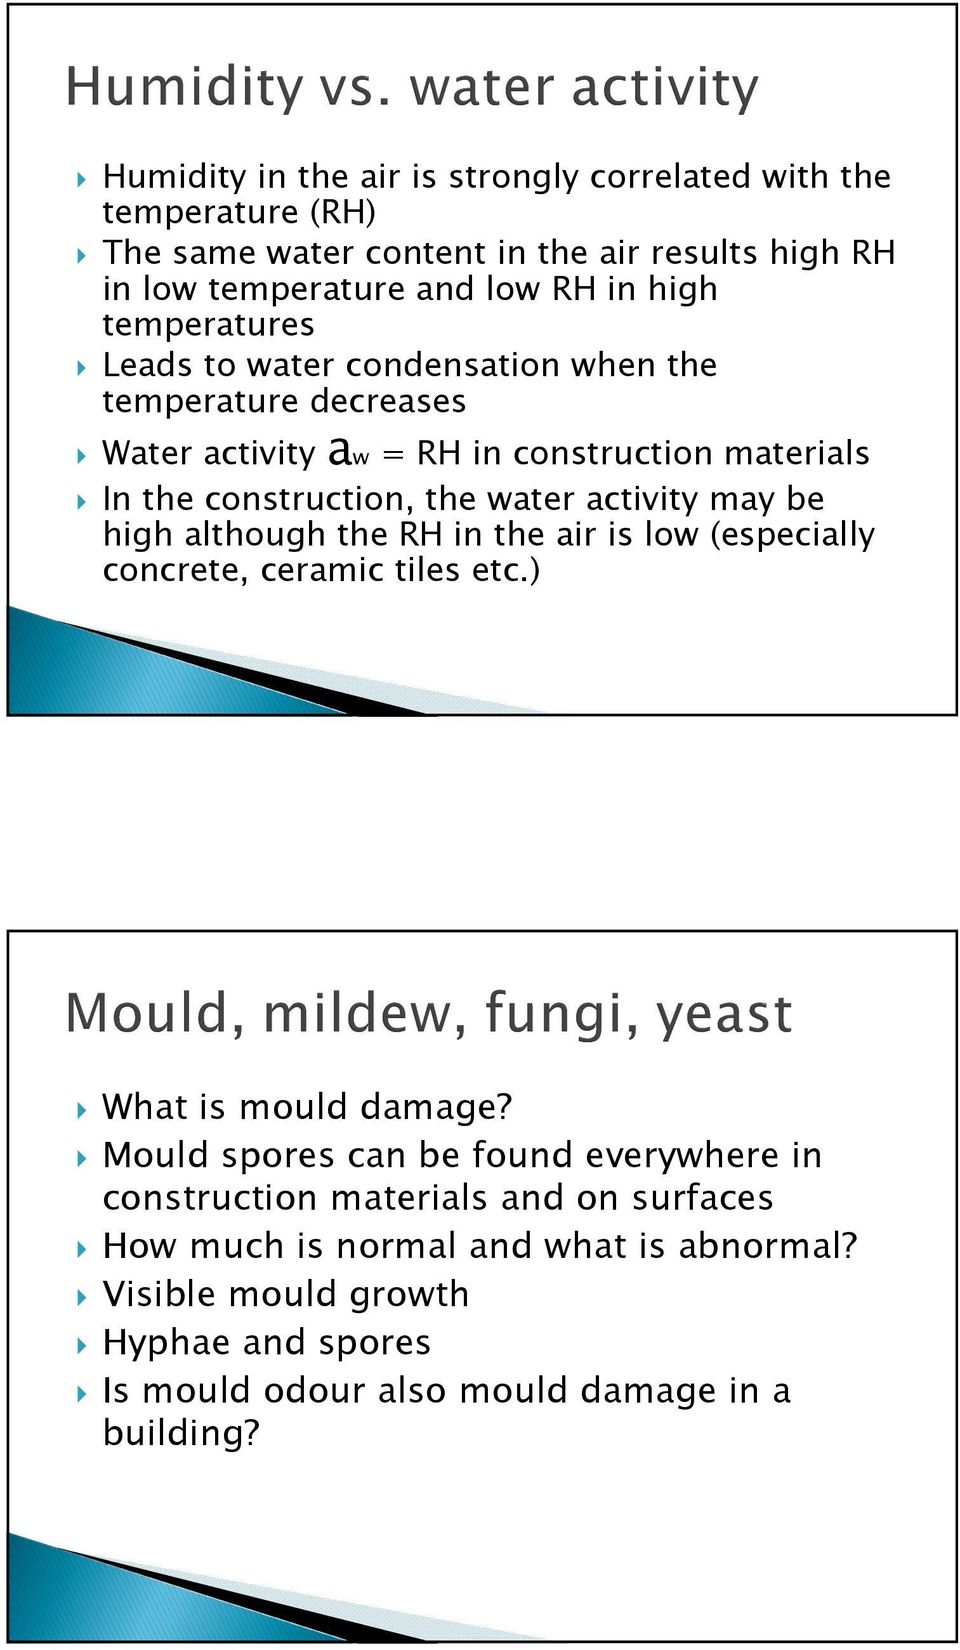 activity may be high although the RH in the air is low (especially concrete, ceramic tiles etc.) What is mould damage?